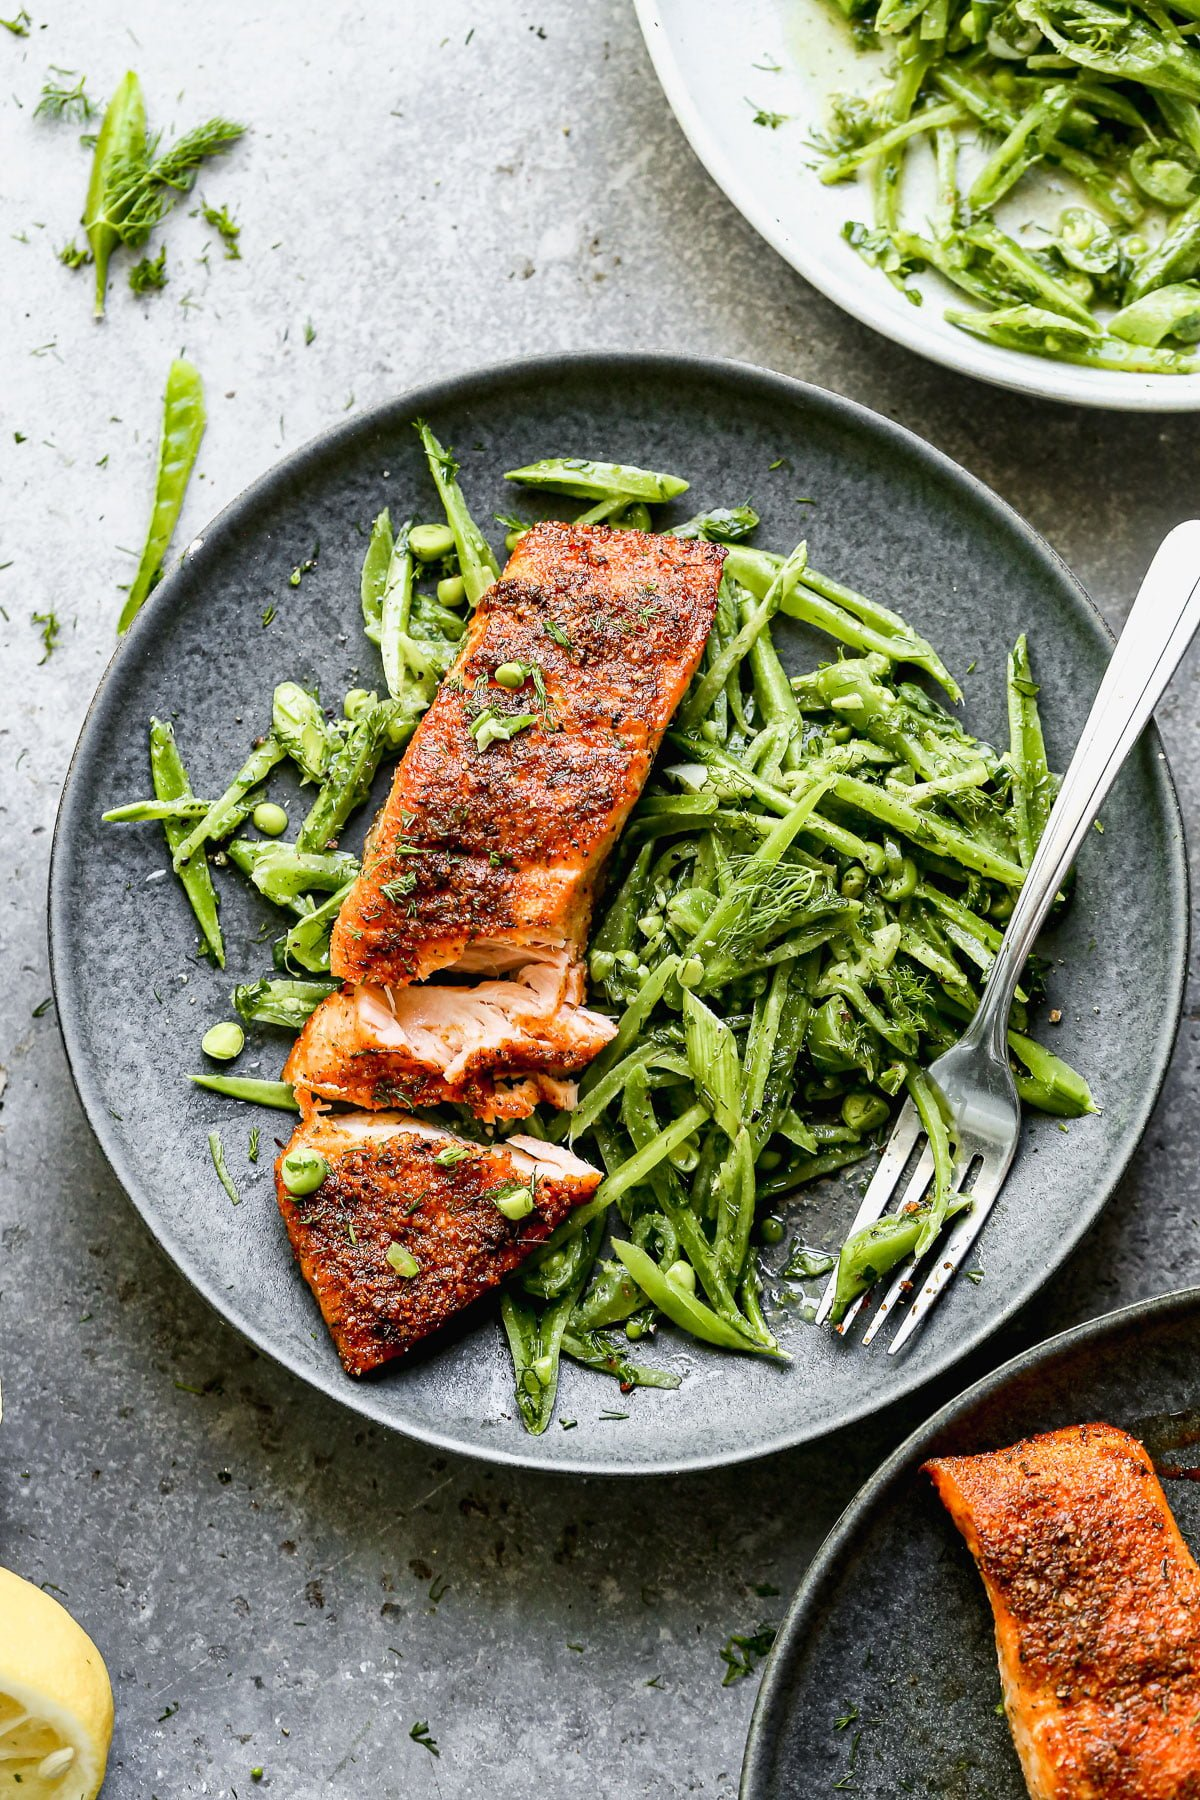 Want salmon that's ultra crispy on the outside, moist on the inside, and abundant with flavor? Head straight the grocery store and pick up the ingredients for our Blackened Air Fryer Salmon with Snap Pea Salad. This bright, spring-forward meal comes together in less than 30 minutes and will certainly find a home in your weekly dinner rotation.